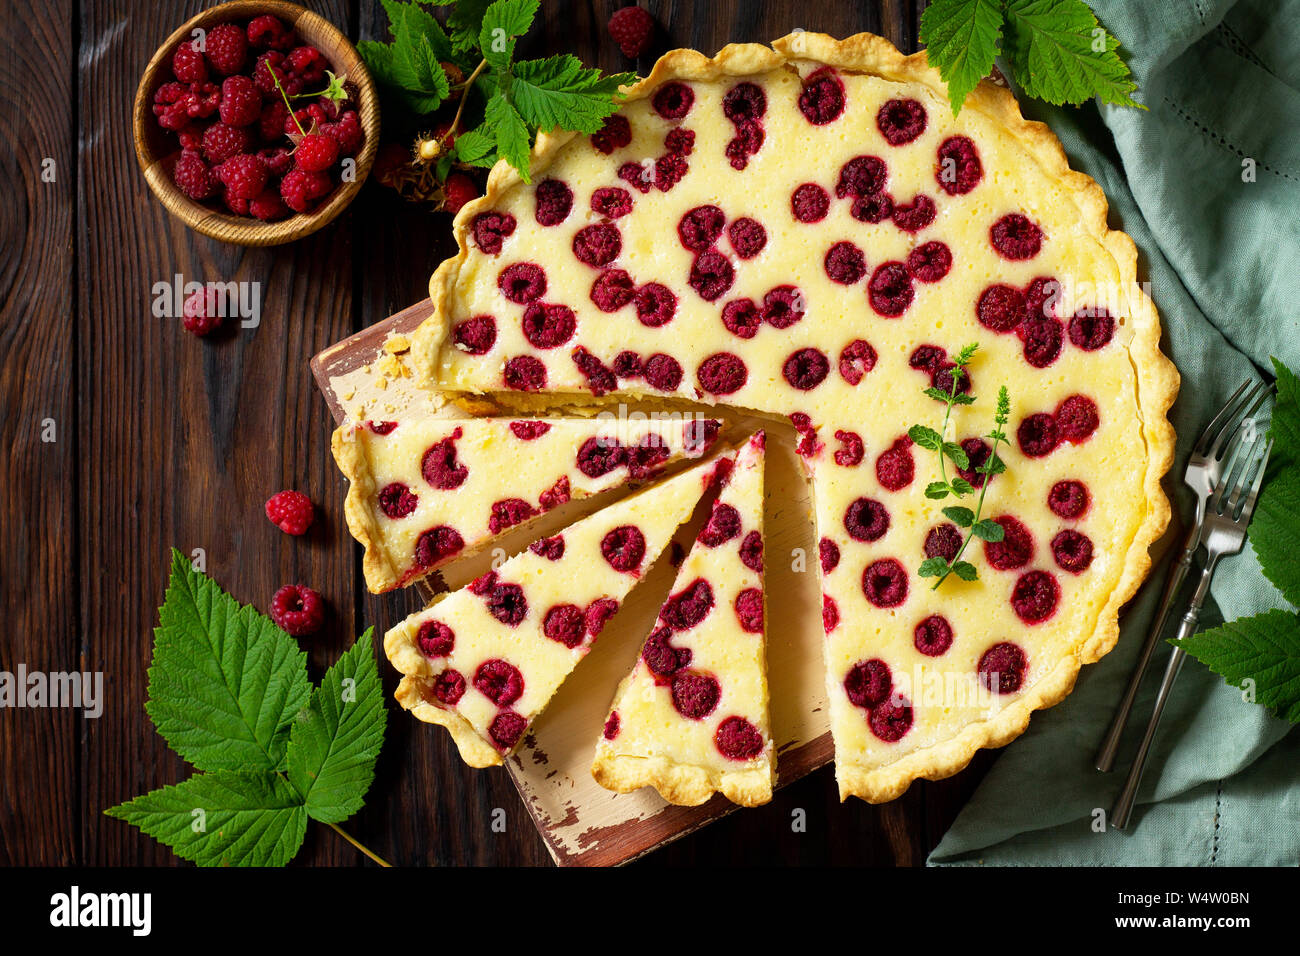 Berry pie summer. Sweet pie, tart with fresh berry raspberries. Delicious cake with raspberries. Top view flat lay with copy space for your text. Stock Photo